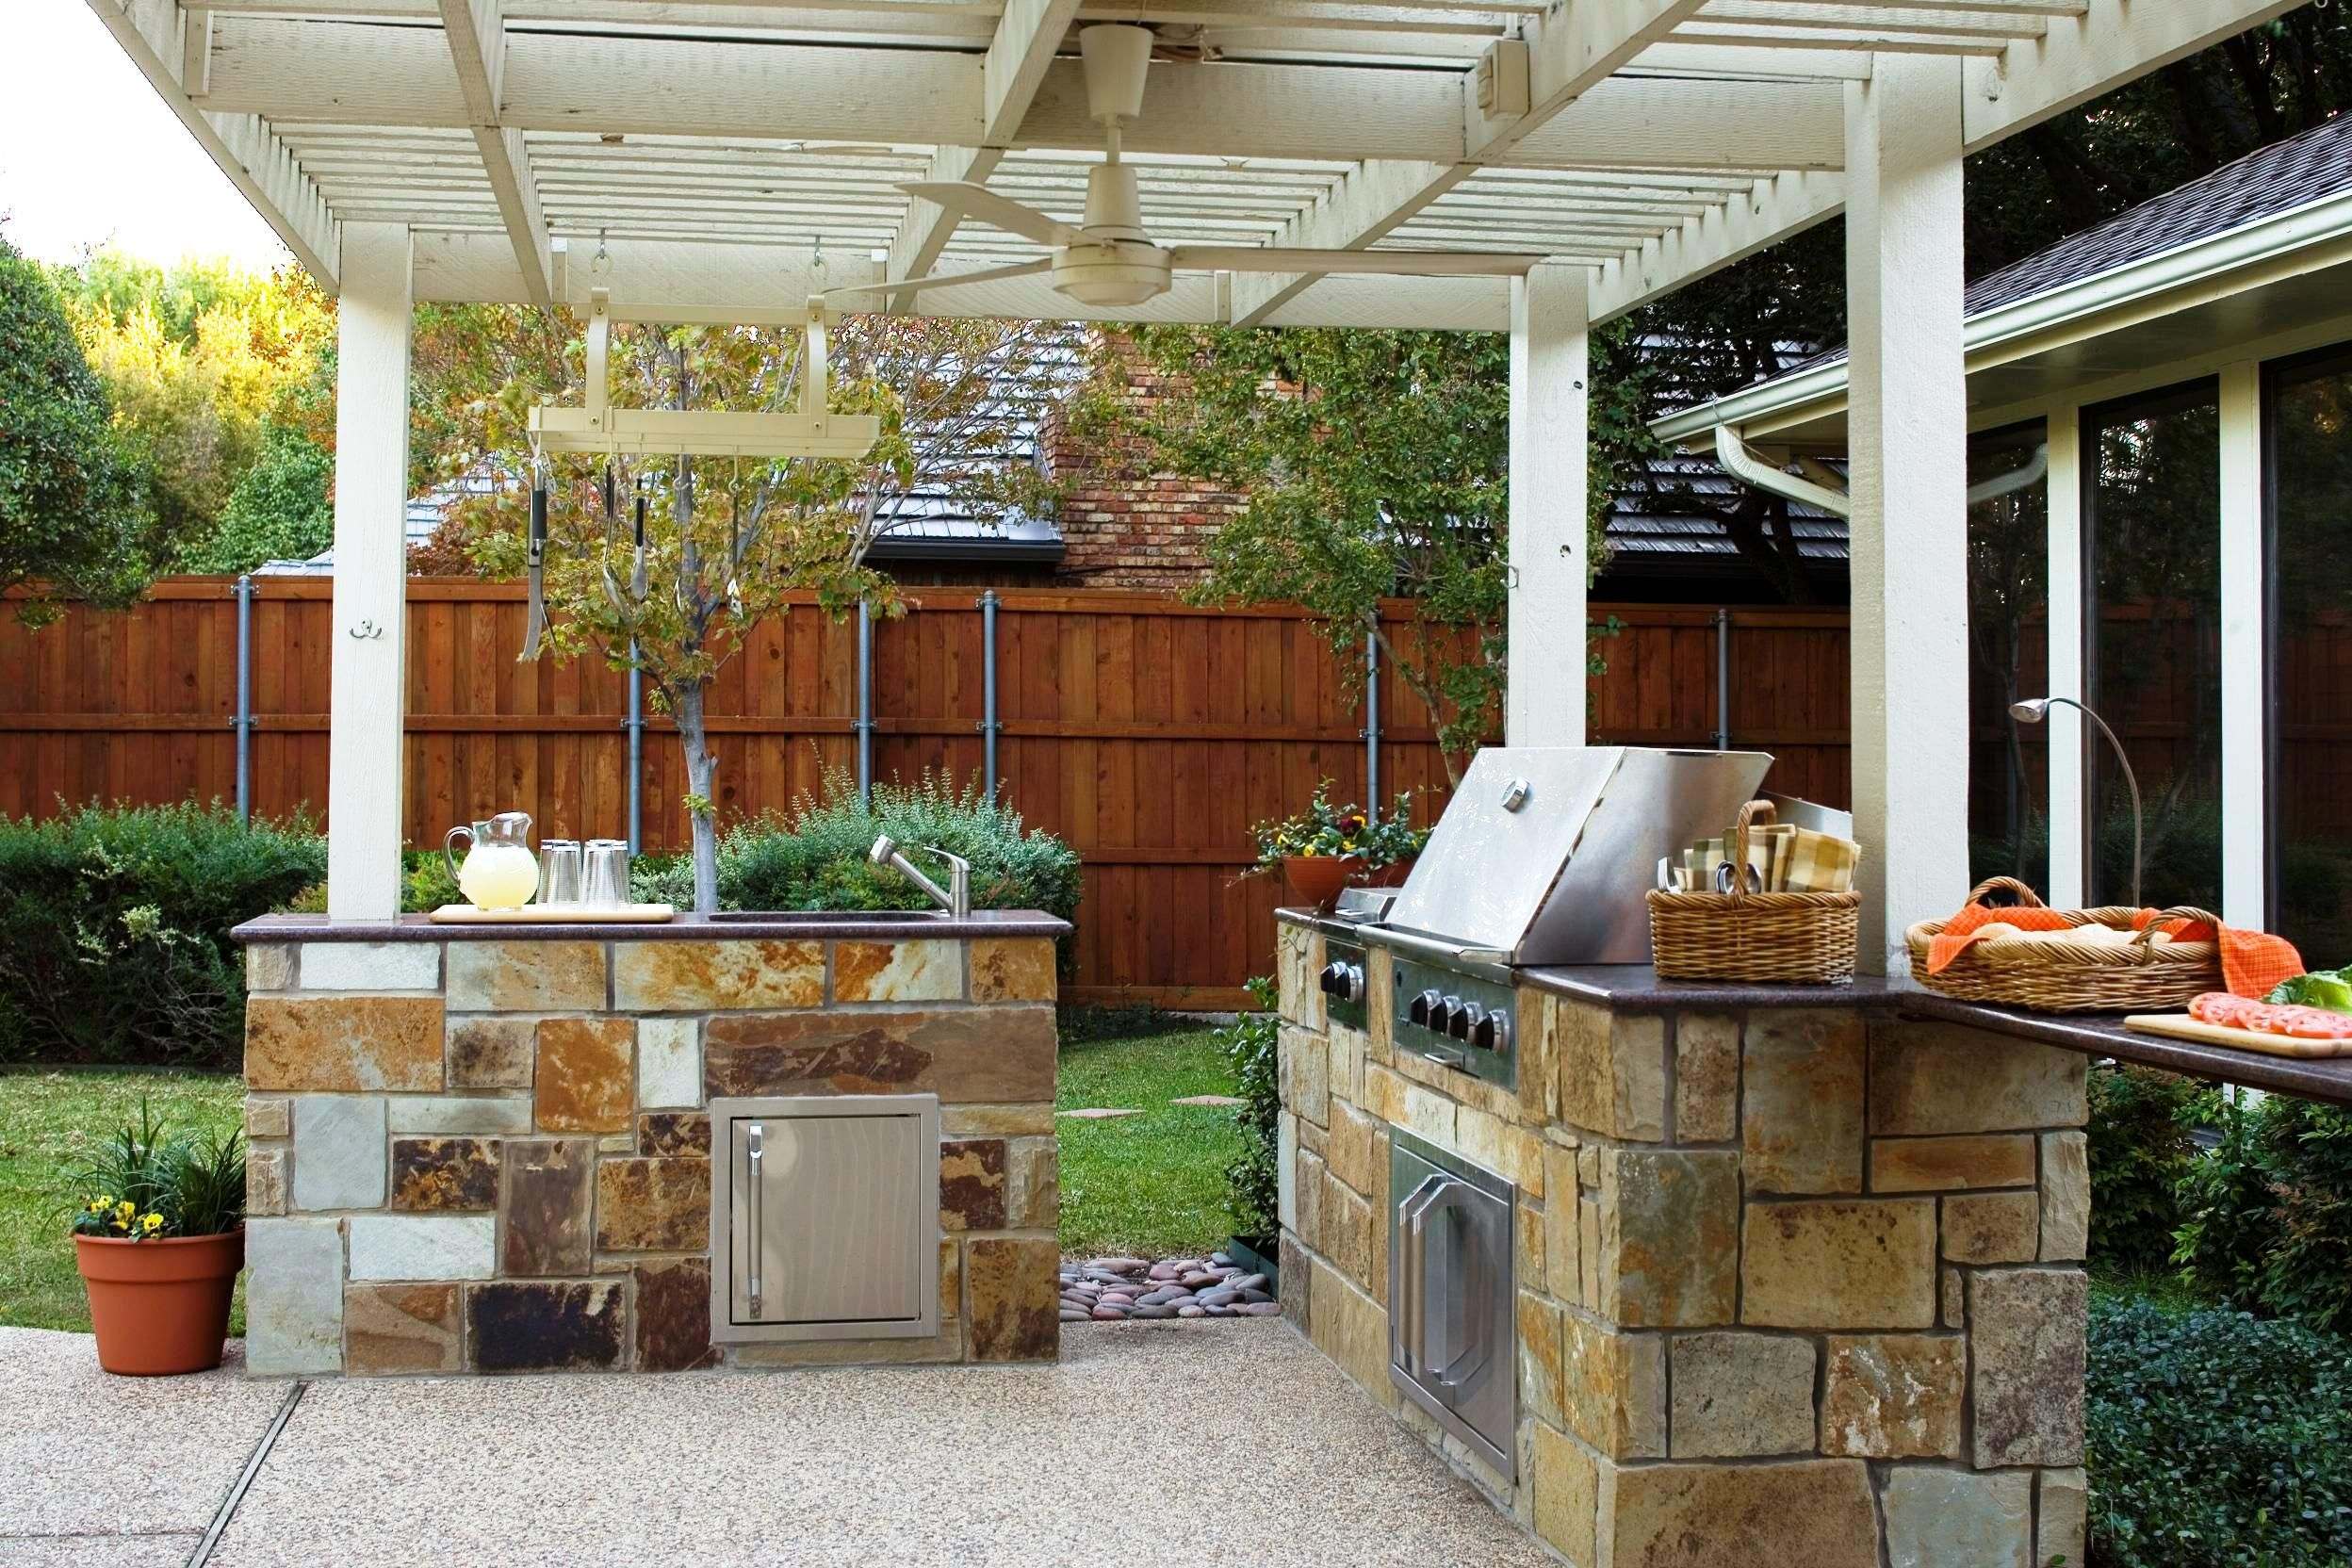 You've Been Grilling For Yearshumanity As A Whole Has Been Fair Small Outdoor Kitchen Designs Decorating Design